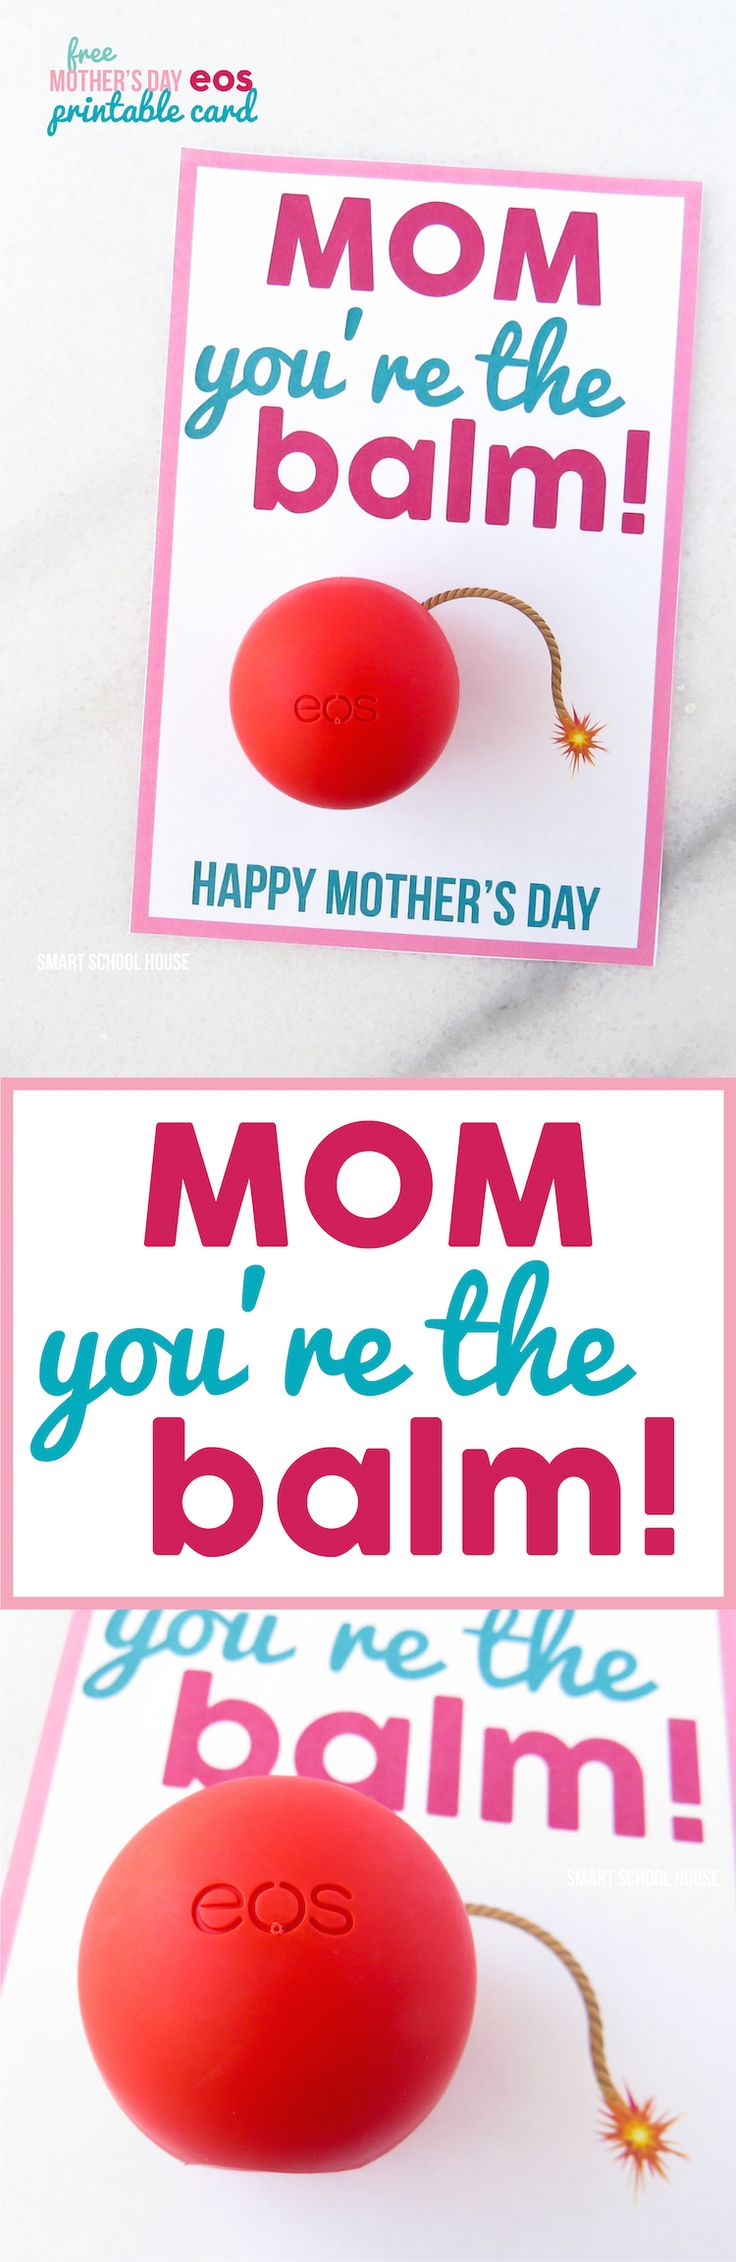 273 Best Mother S Day Gifts Images On Pinterest Day Care For Kids